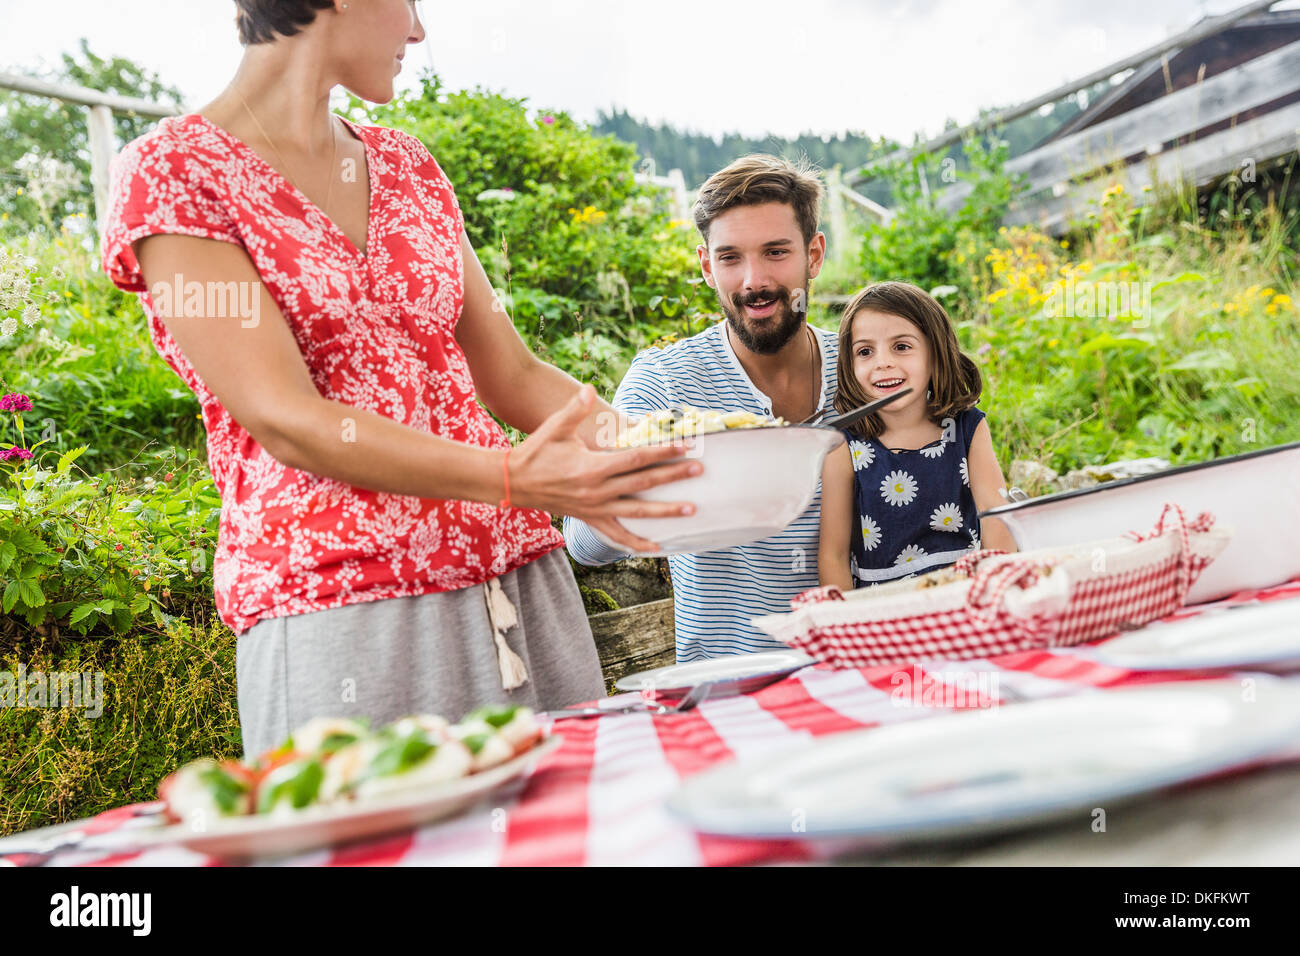 Young family sharing picnic lunch, Tyrol, Austria - Stock Image